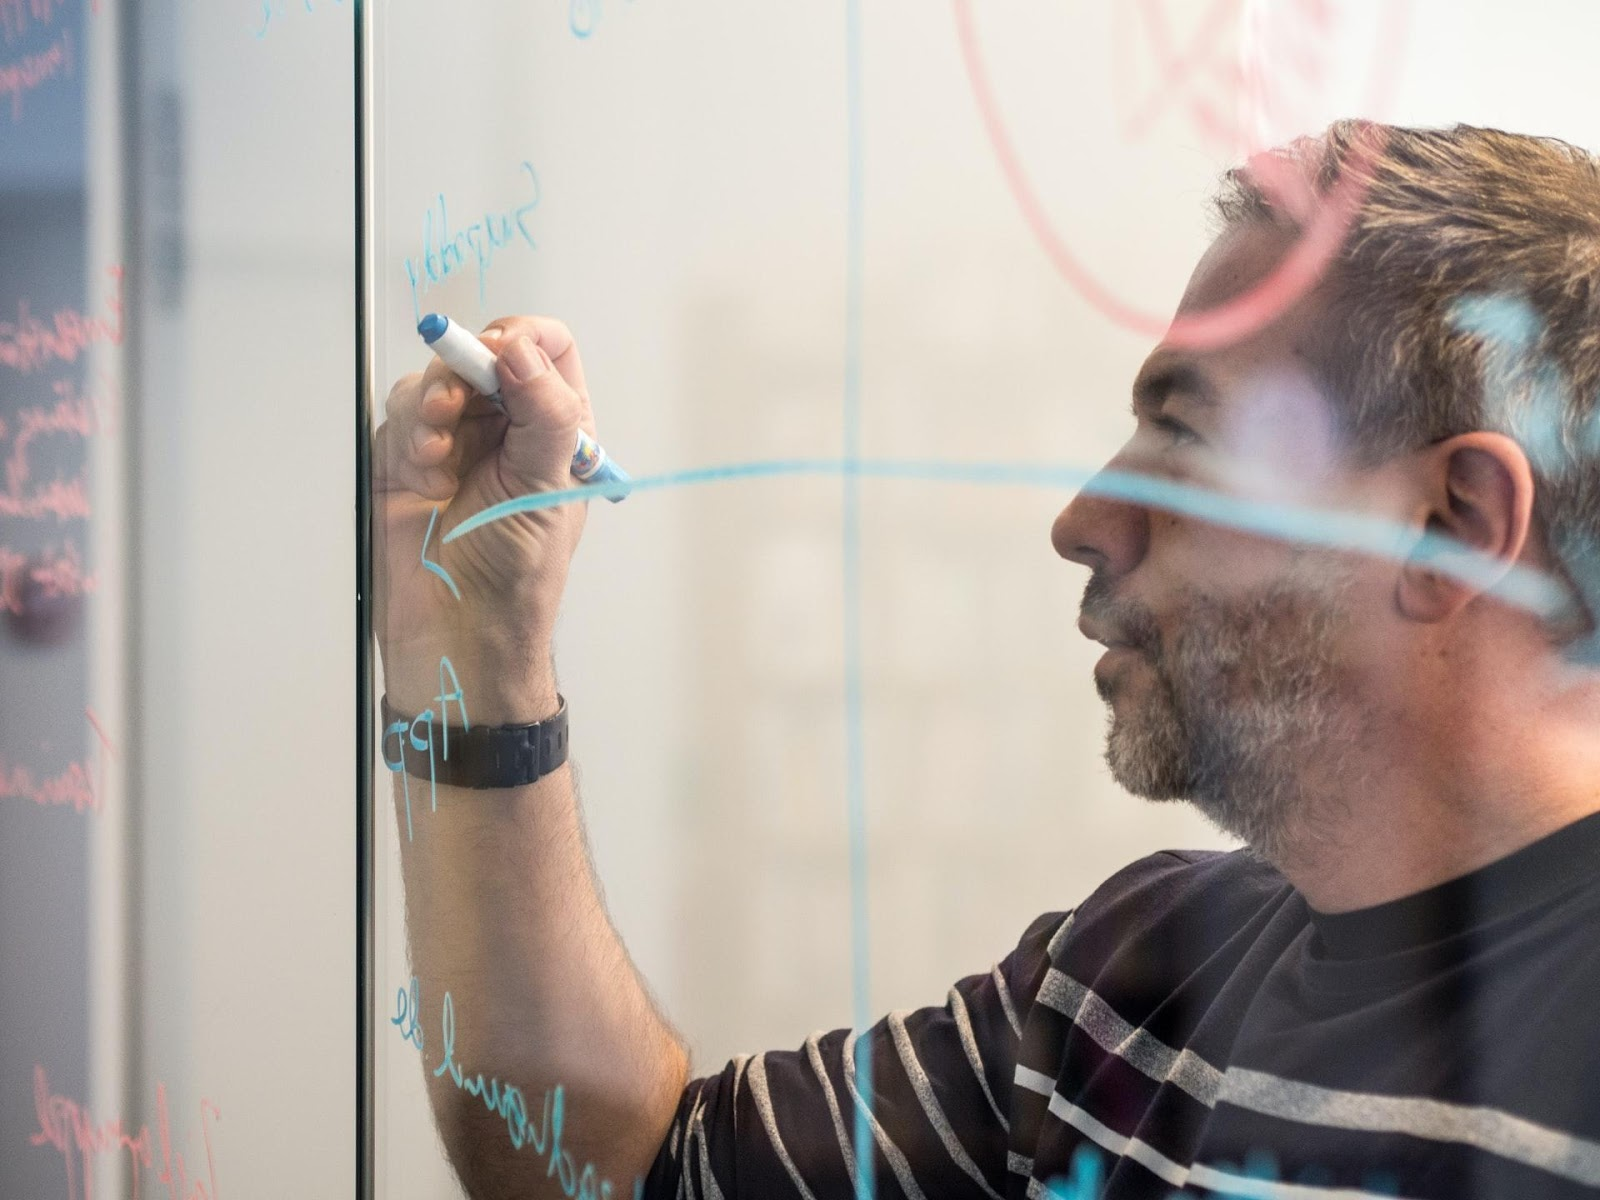 A startup founder whiteboarding ideas